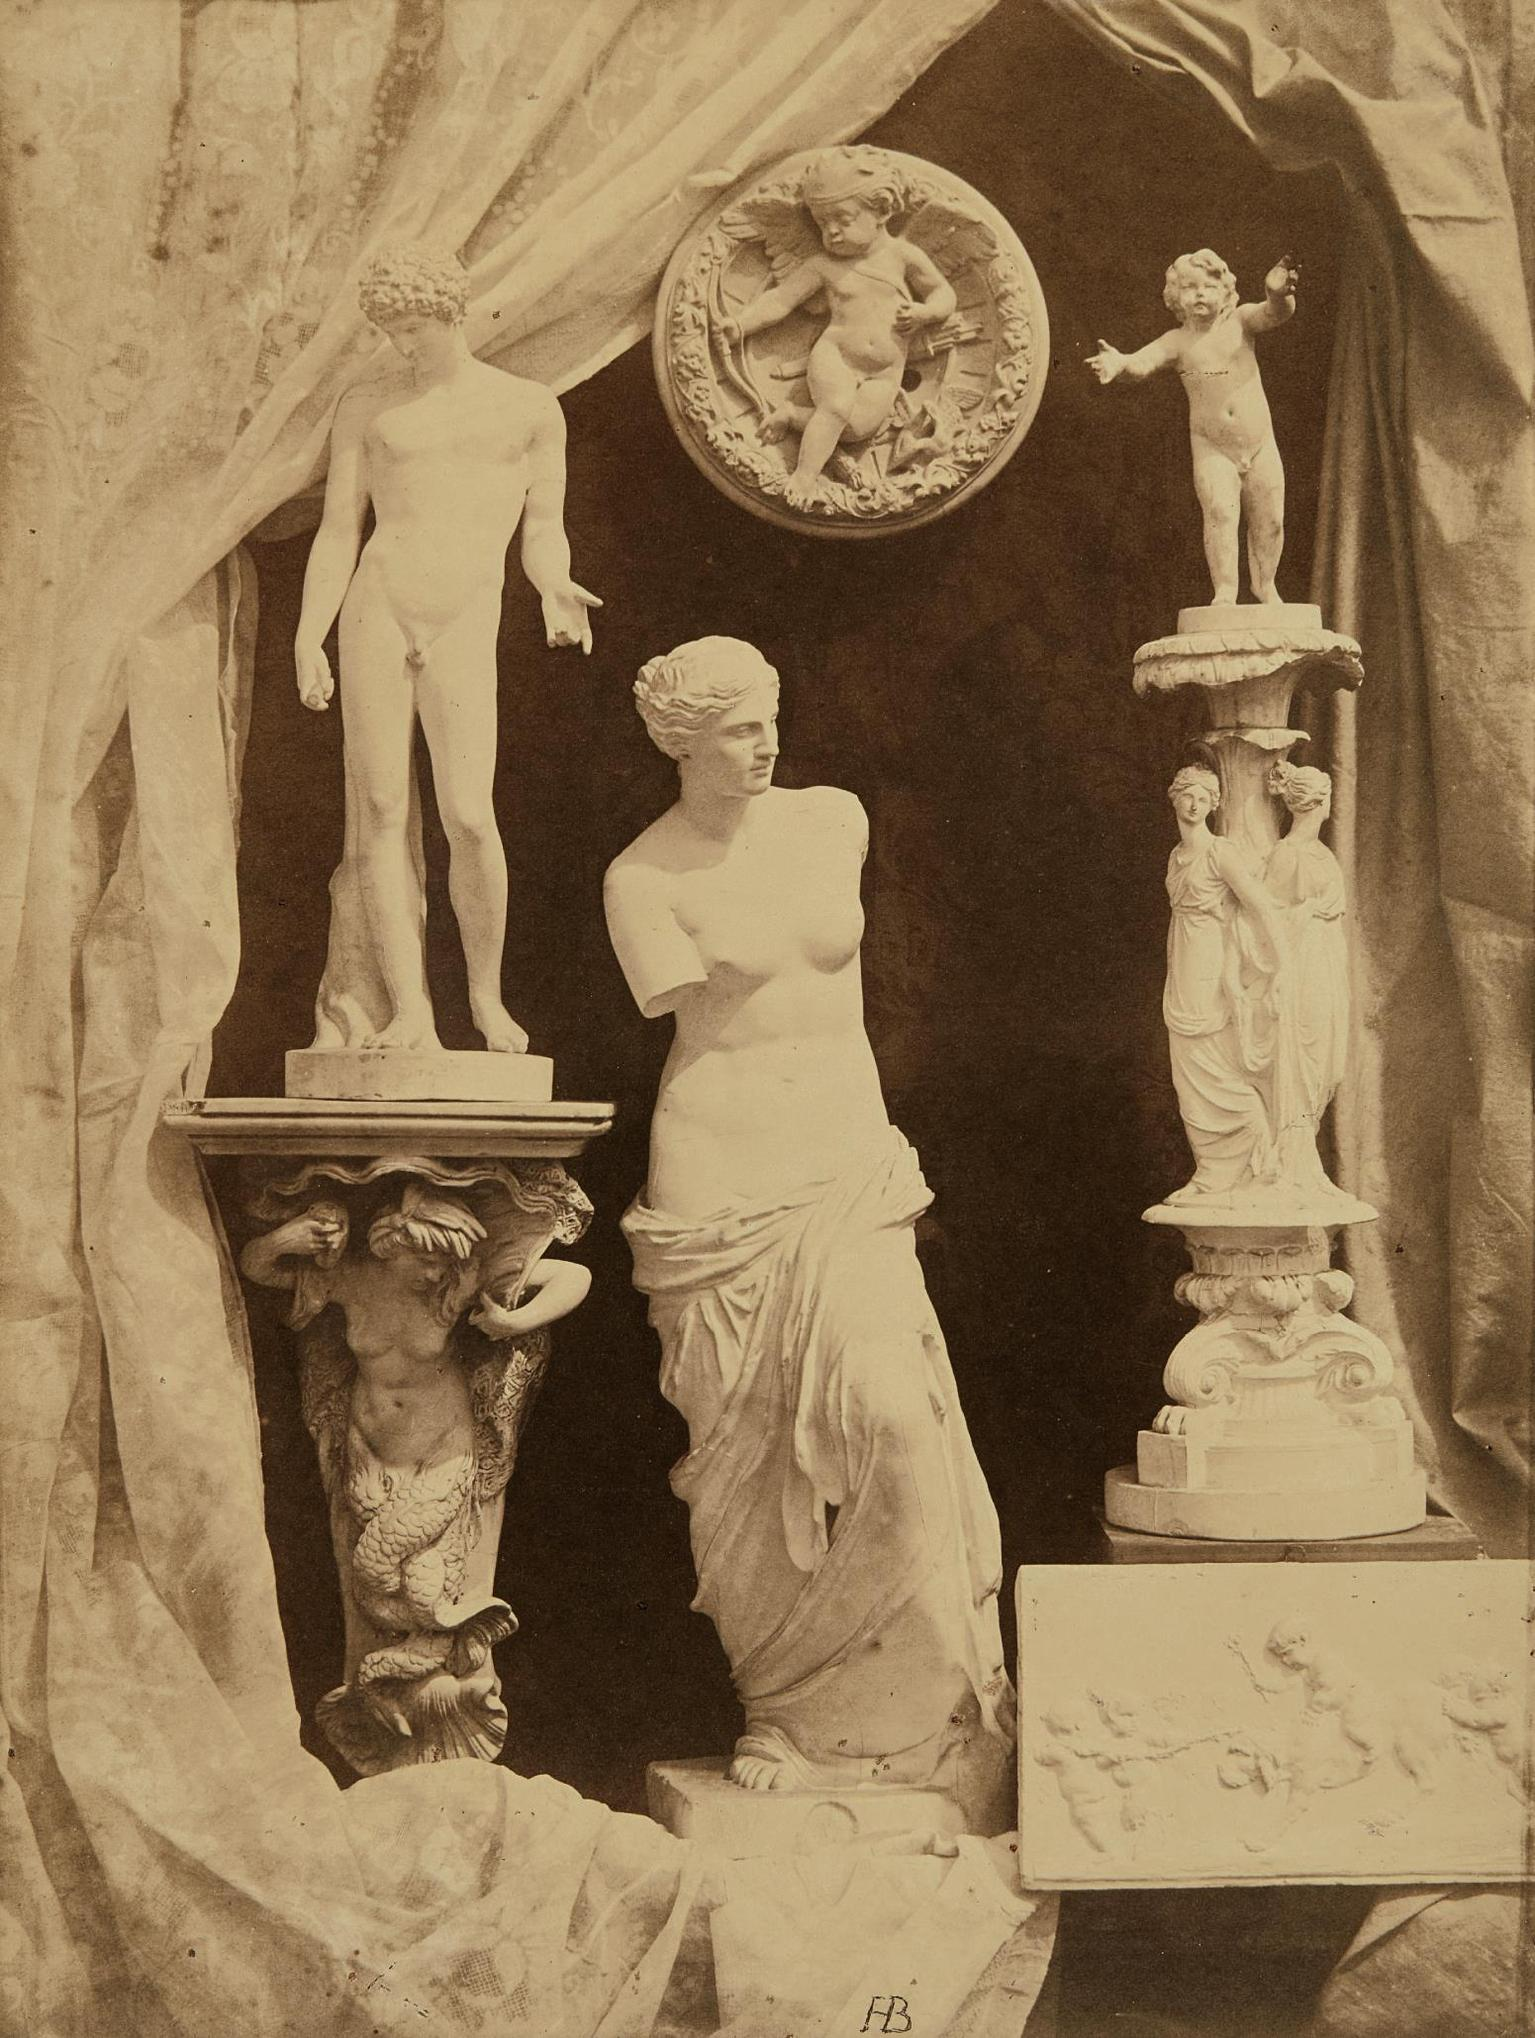 Hippolyte Bayard - Untitled (Still Life With Statuary)-1855